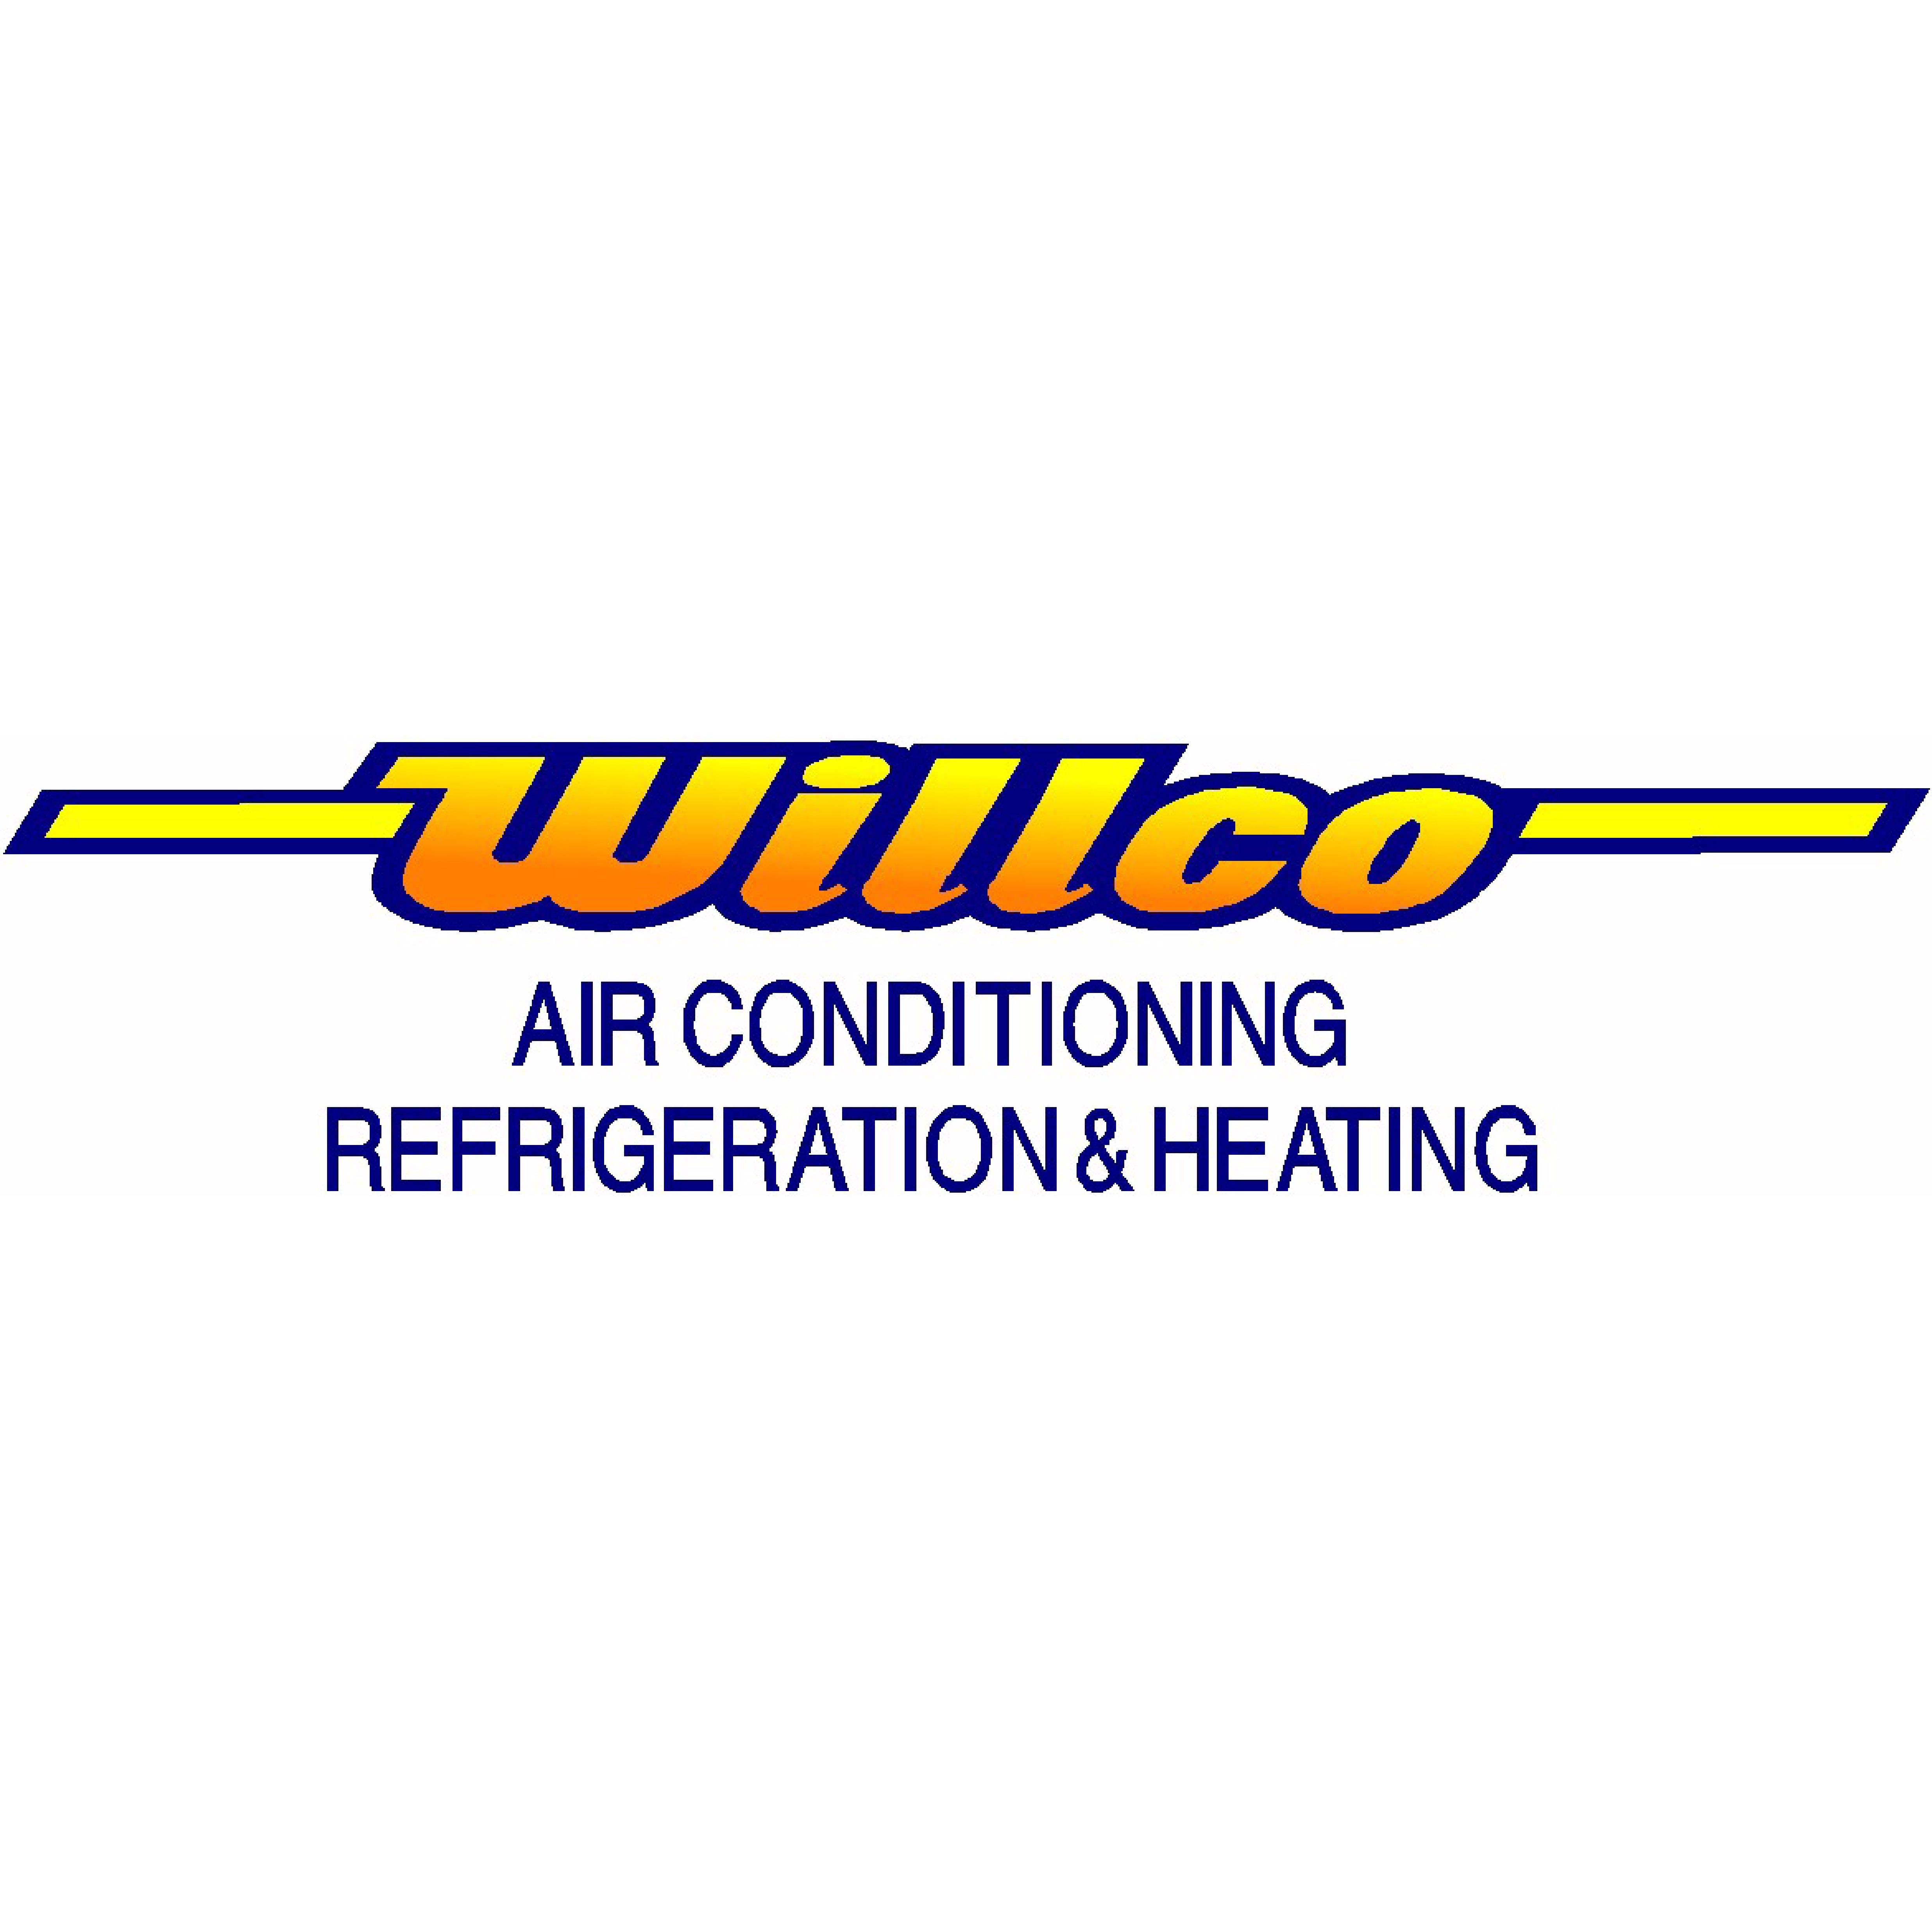 Willco Air Conditioning, Refrigeration & Heating - Branchville, NJ 07826 - (862)303-3458 | ShowMeLocal.com